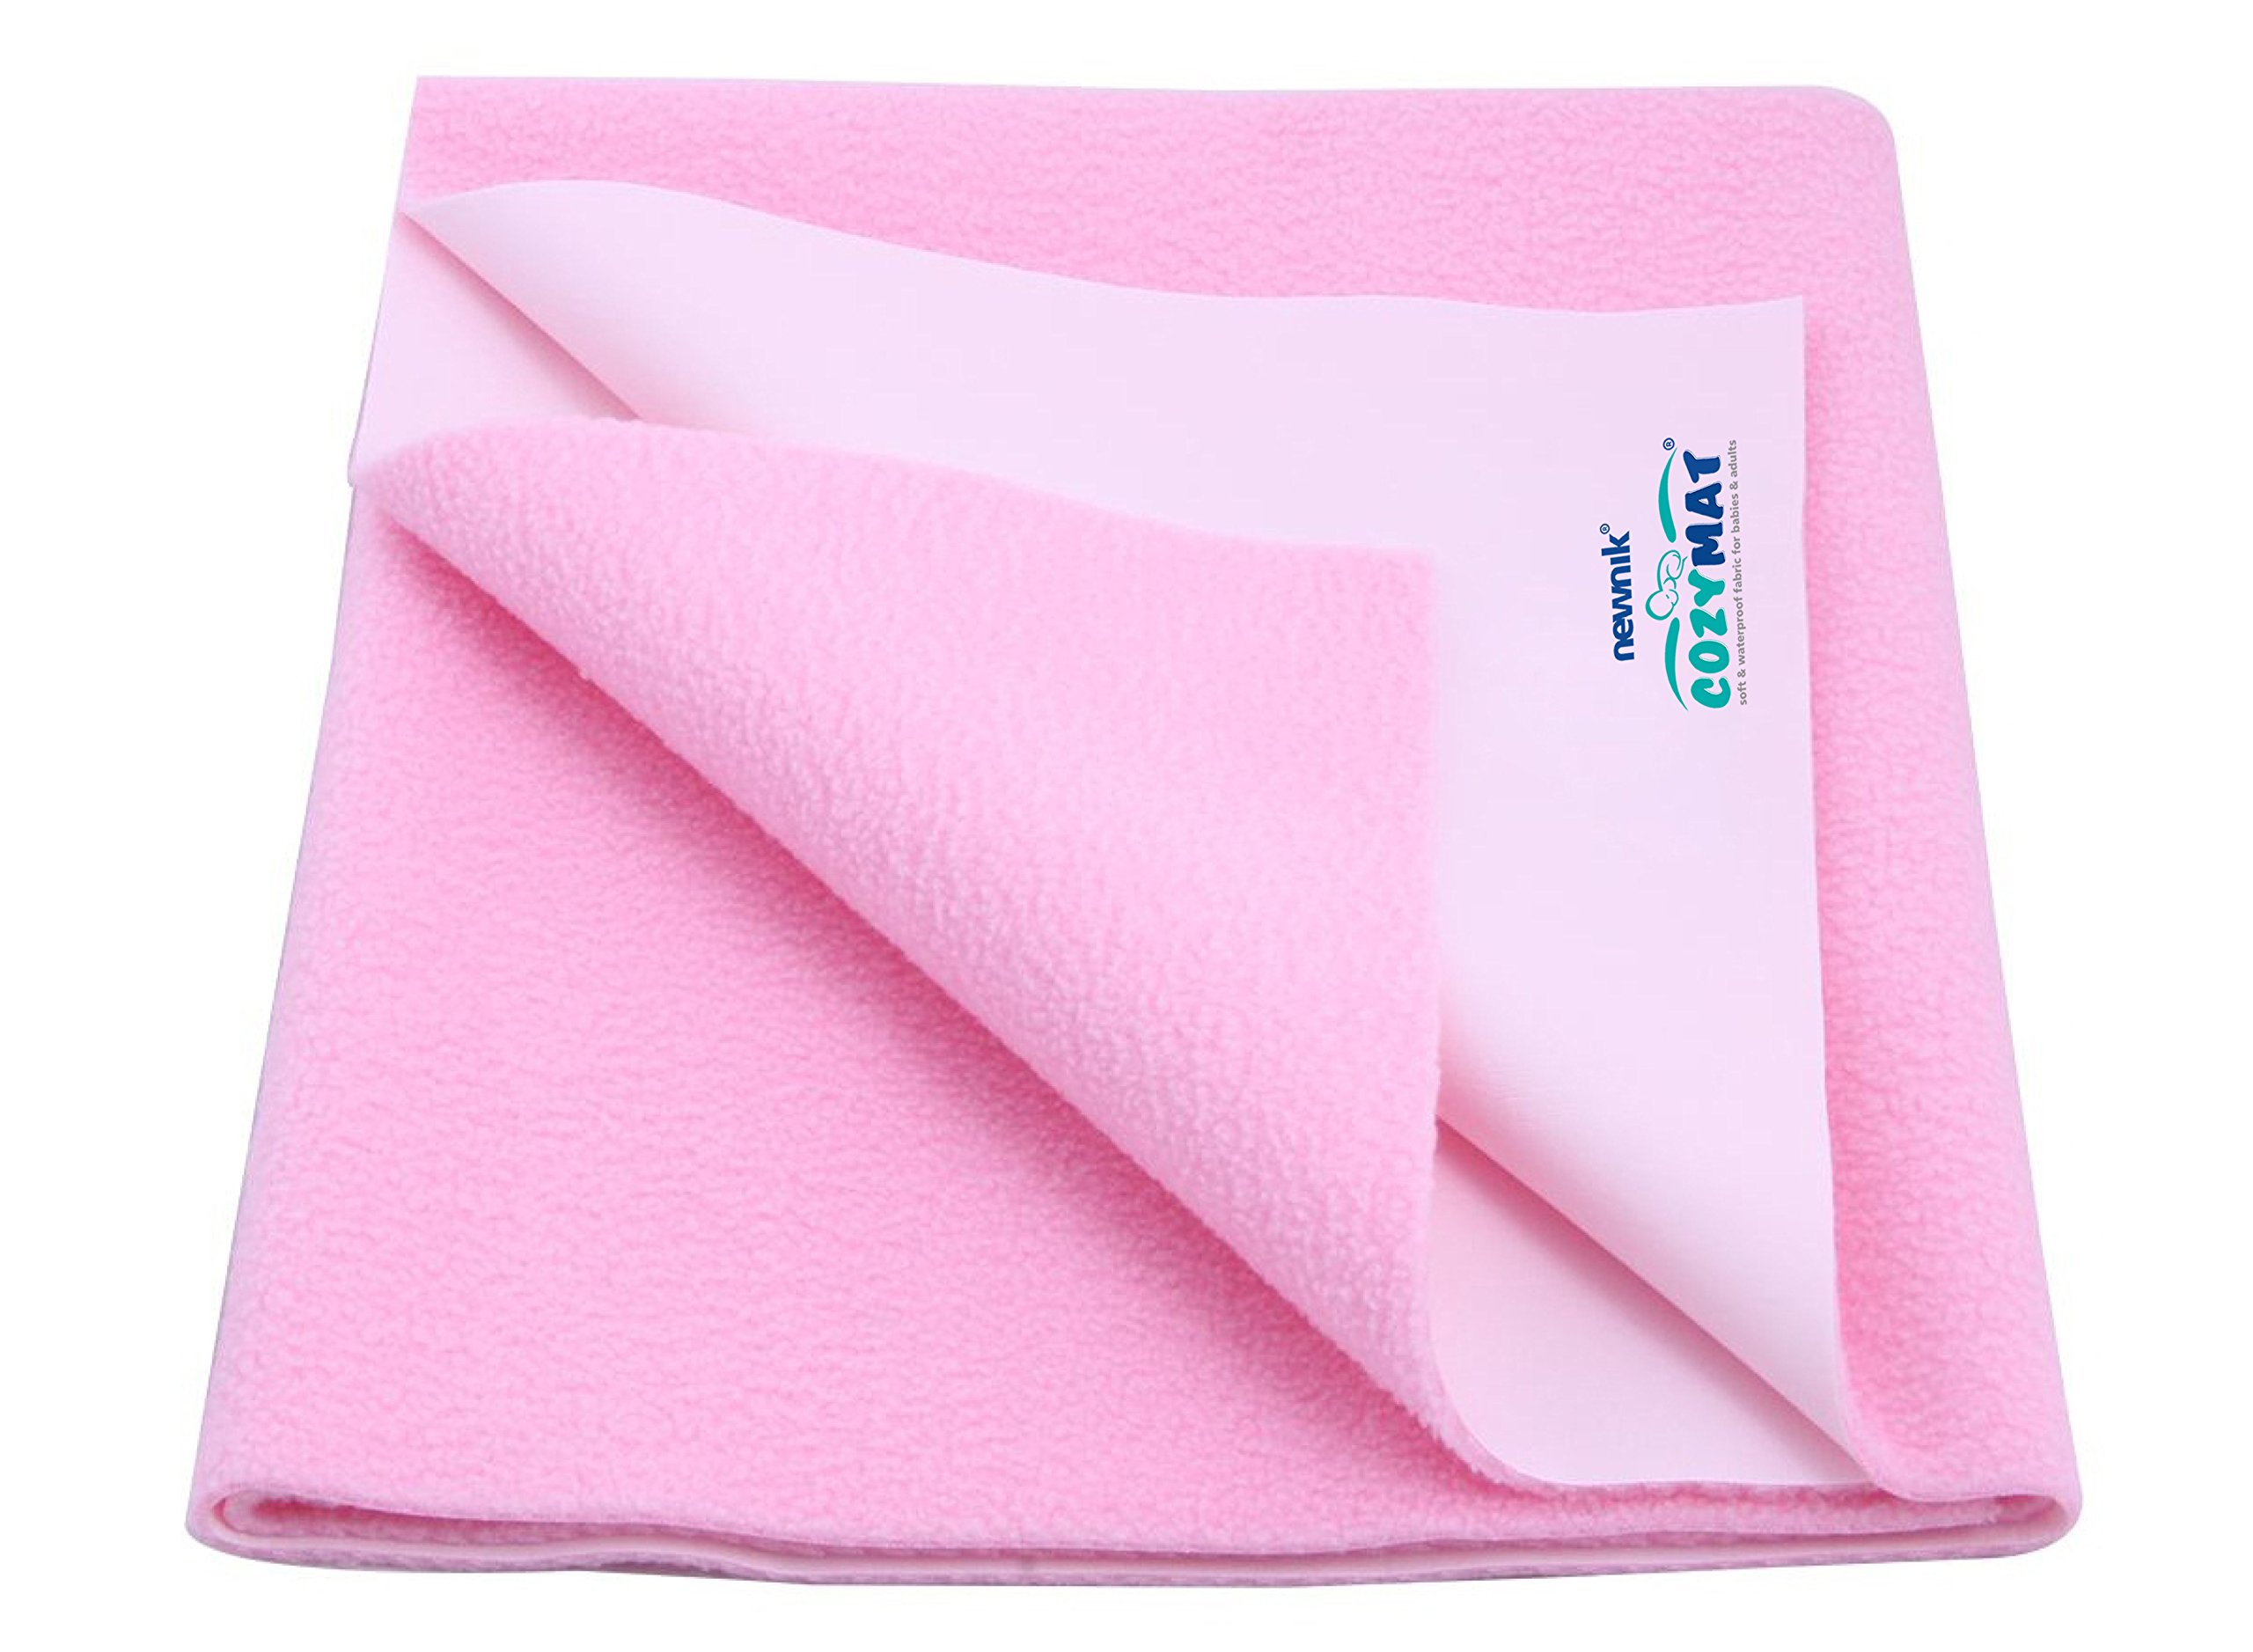 Cozymat Dry Sheet Waterproof Breathable Bed Protector (Size: 200cm X 260cm) Pink, Double Bed by cozymat